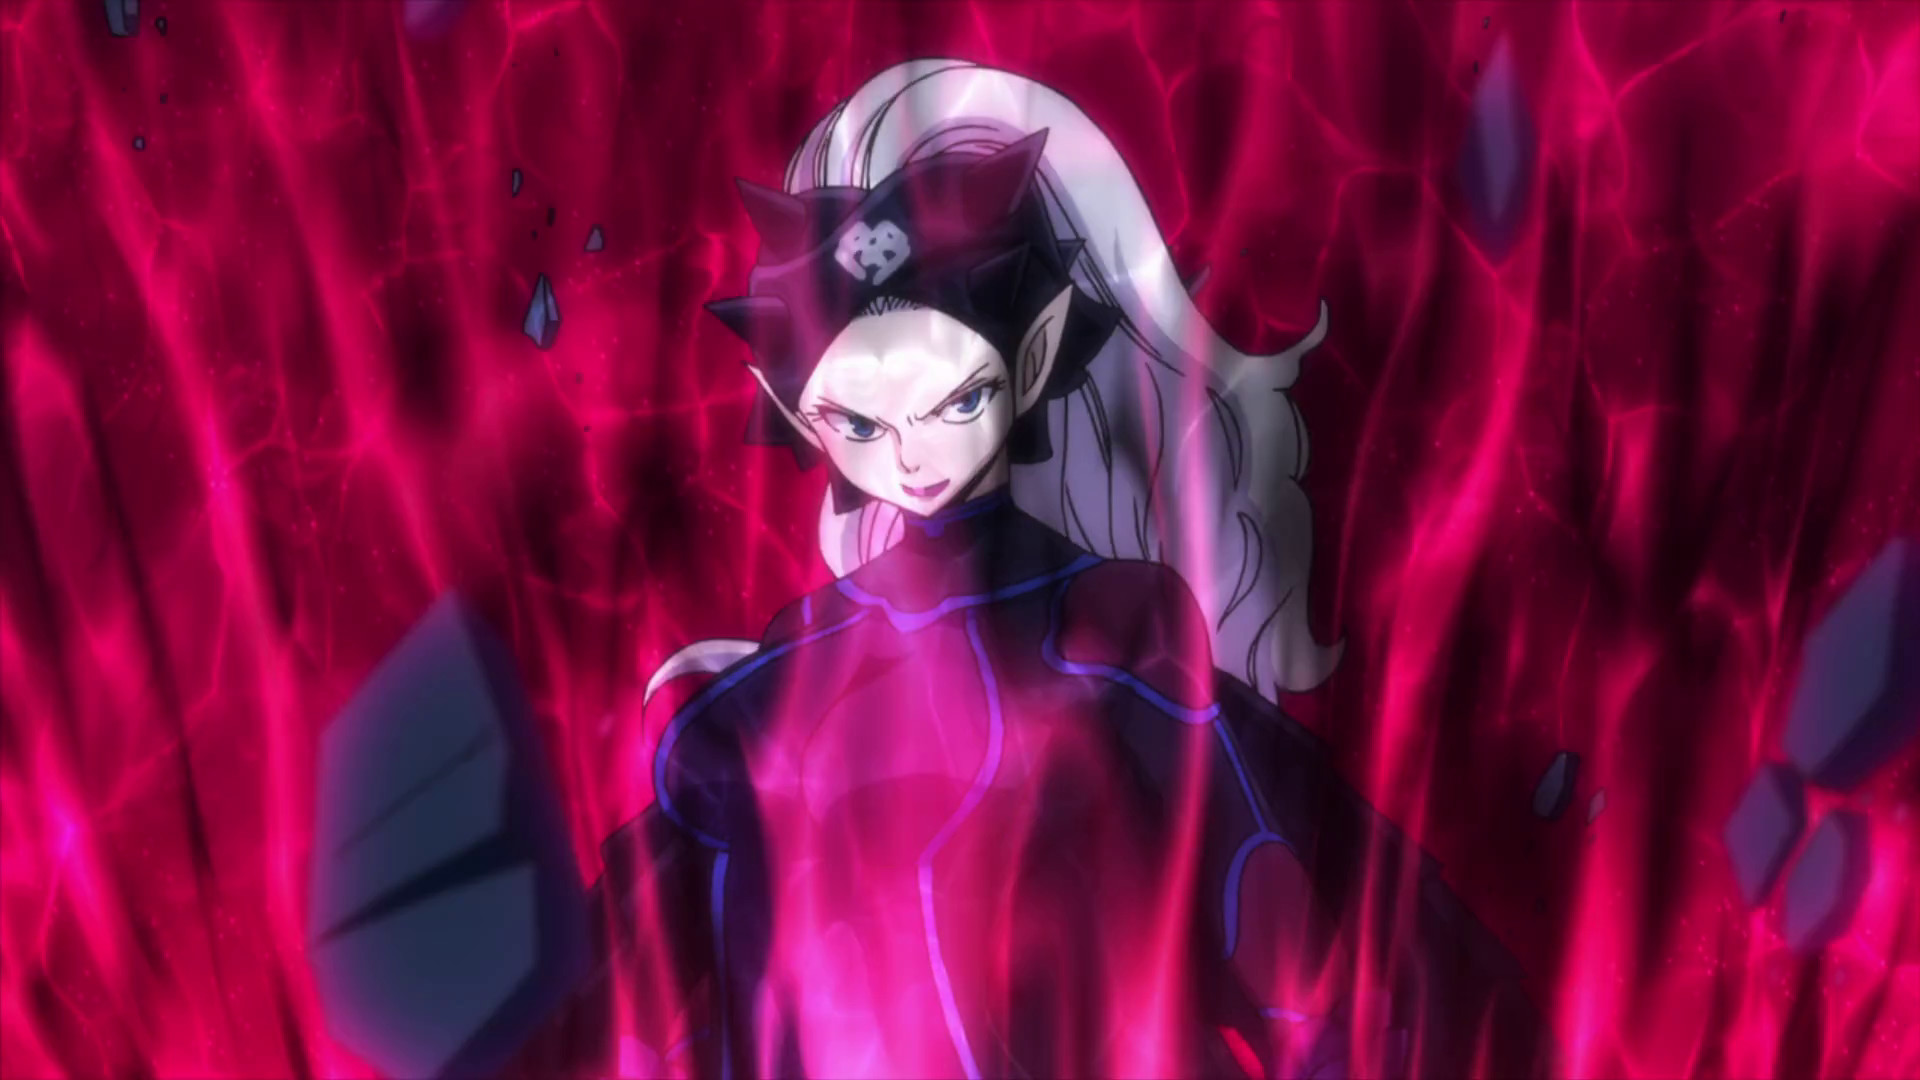 Mirajane Strauss Wallpapers 64 Pictures Please contact us if you want to publish an iphone 12 pro max wallpaper on our site. mirajane strauss wallpapers 64 pictures